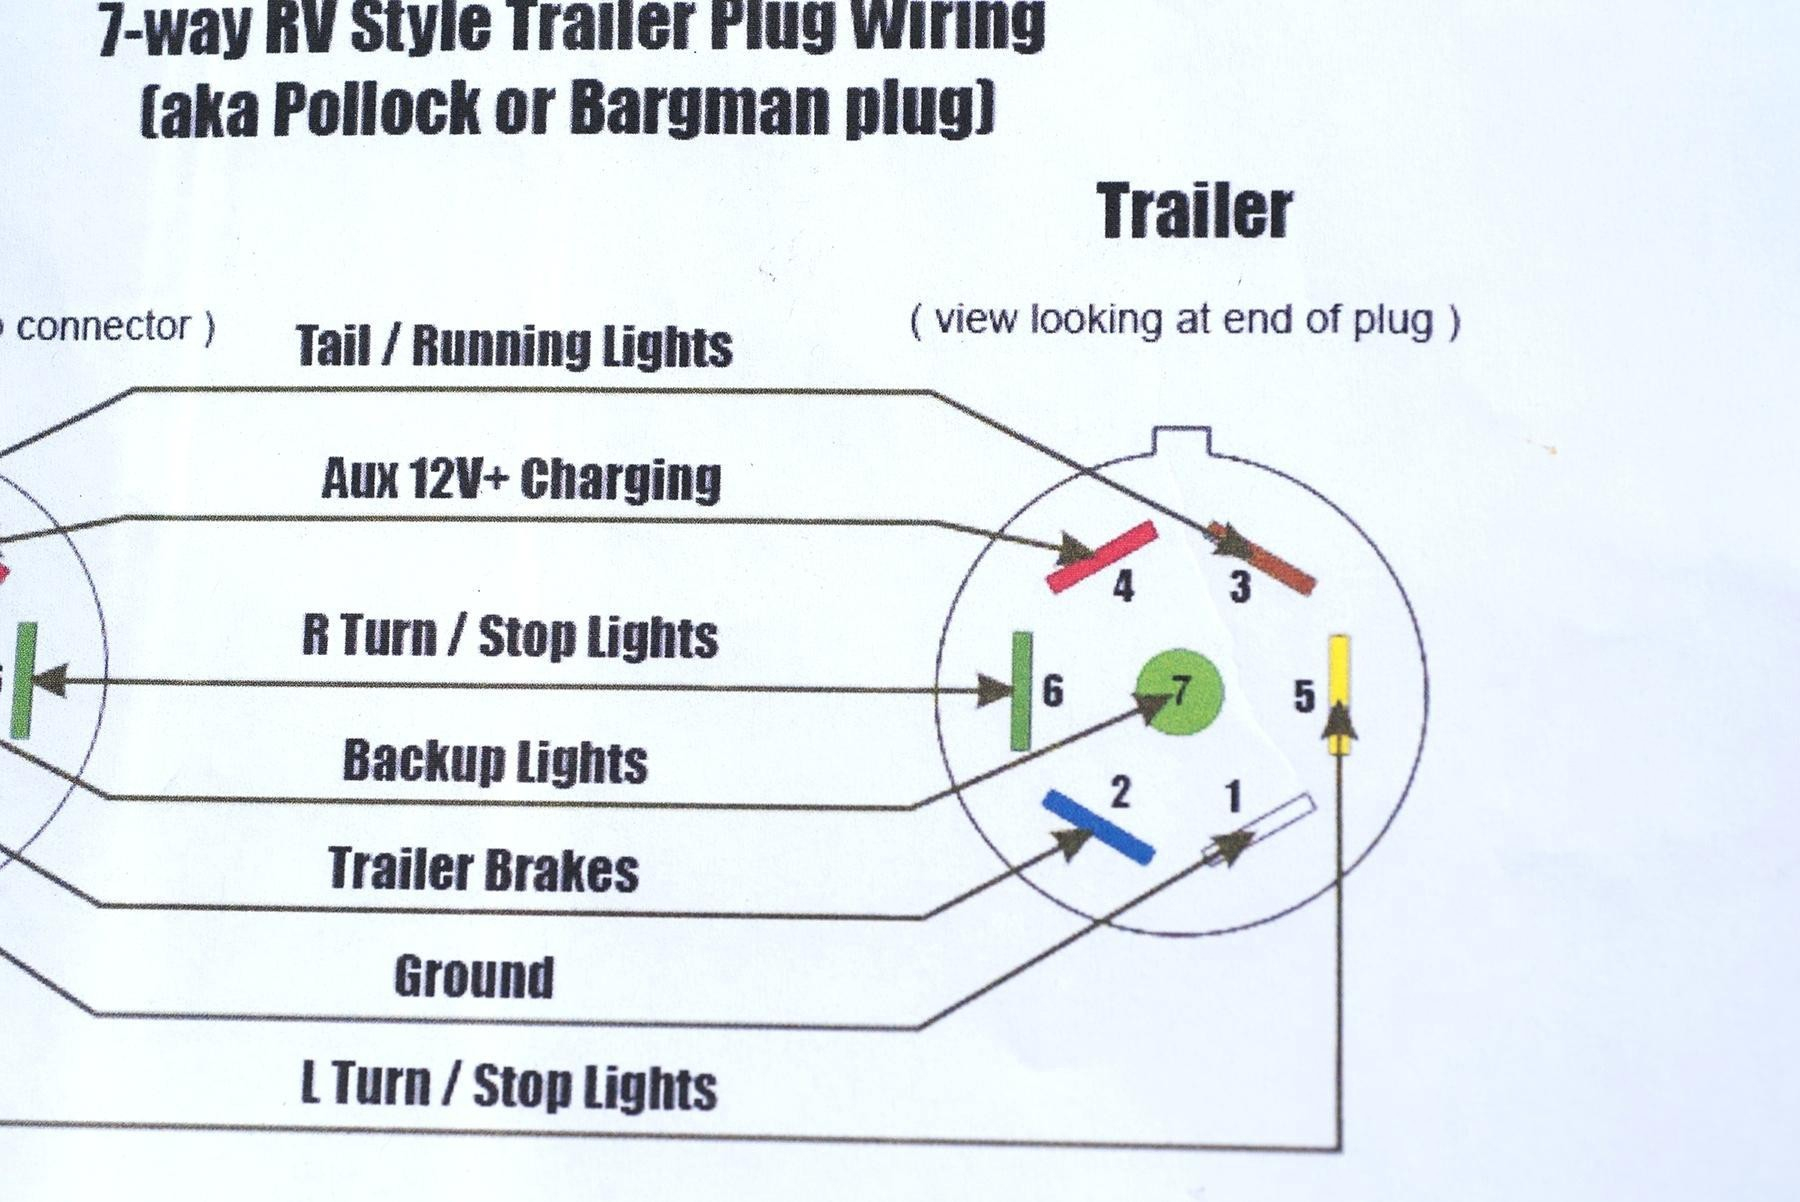 Trailer Wiring Diagram 4 Way Round - Detailed Wiring Diagram - 4 Flat Wiring Diagram For Trailer